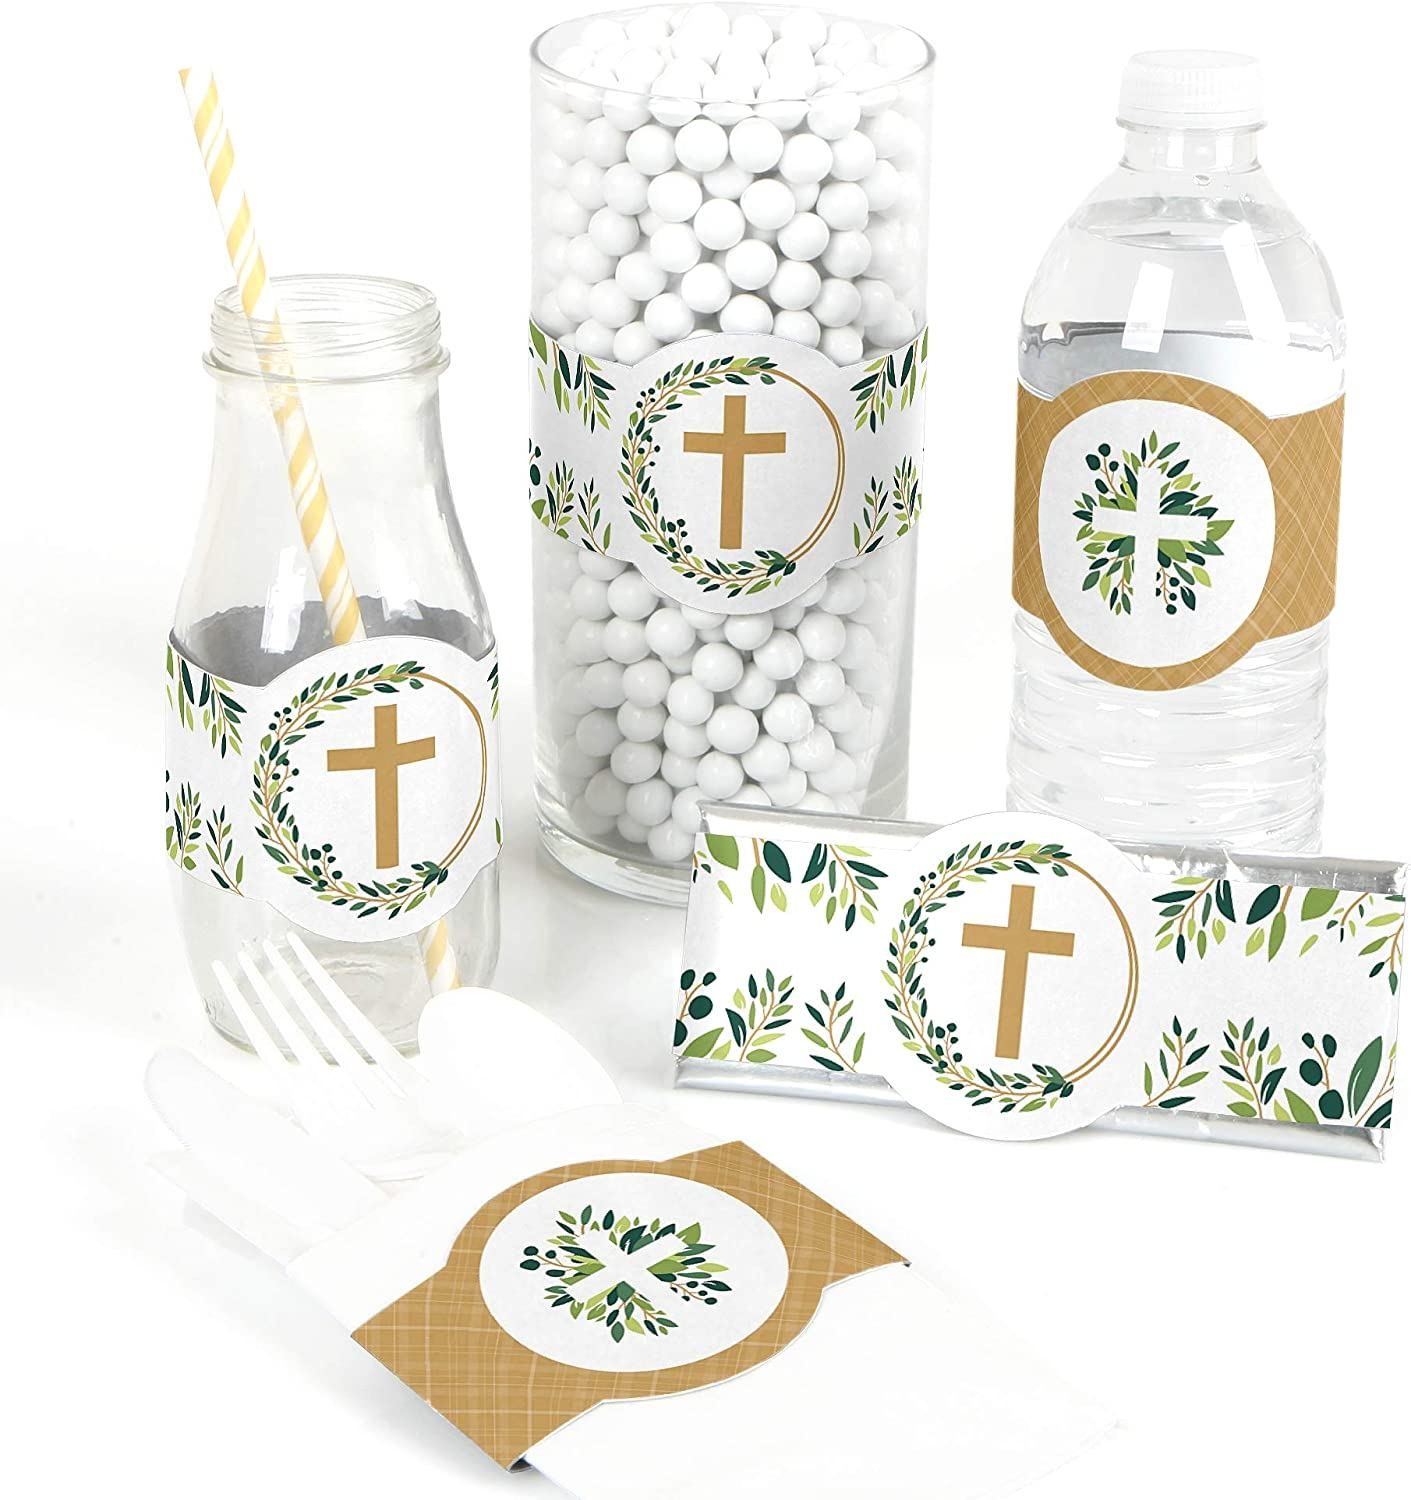 Elegant Cross DIY Party Supplies Set of 15 Religious Party DIY Wrapper Favors and Decorations